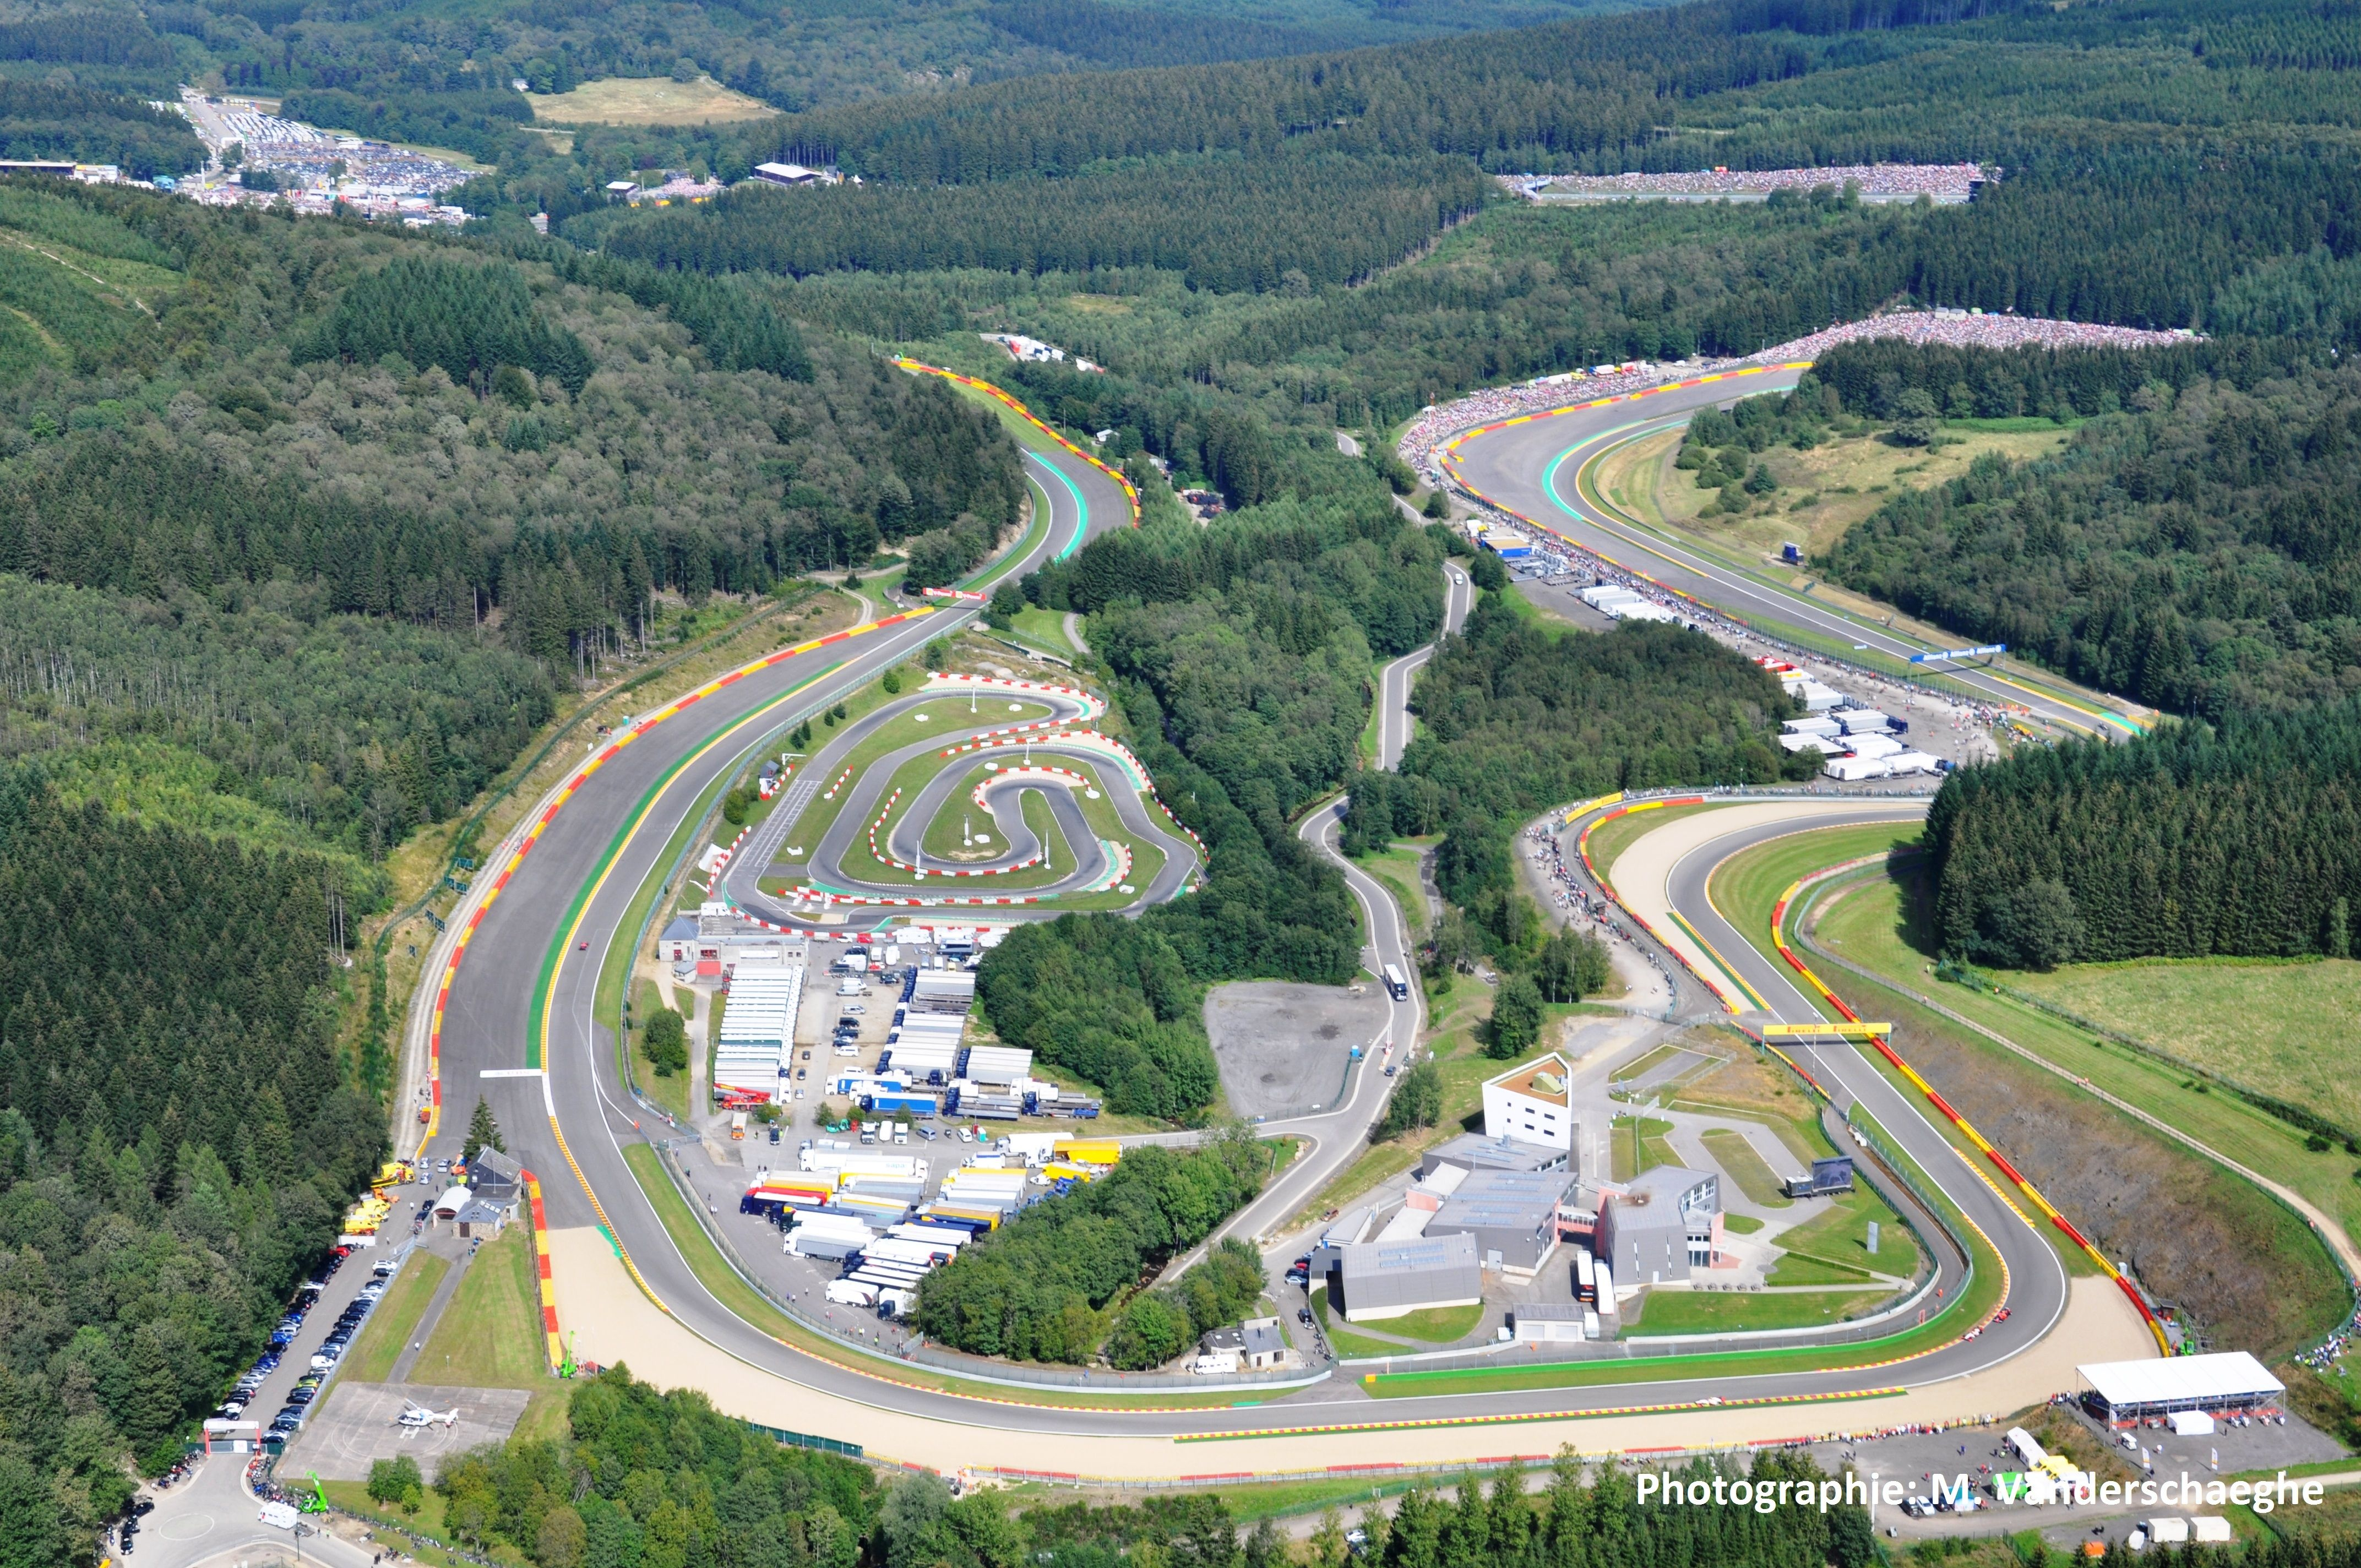 Formel 1 Spa Francorchamps